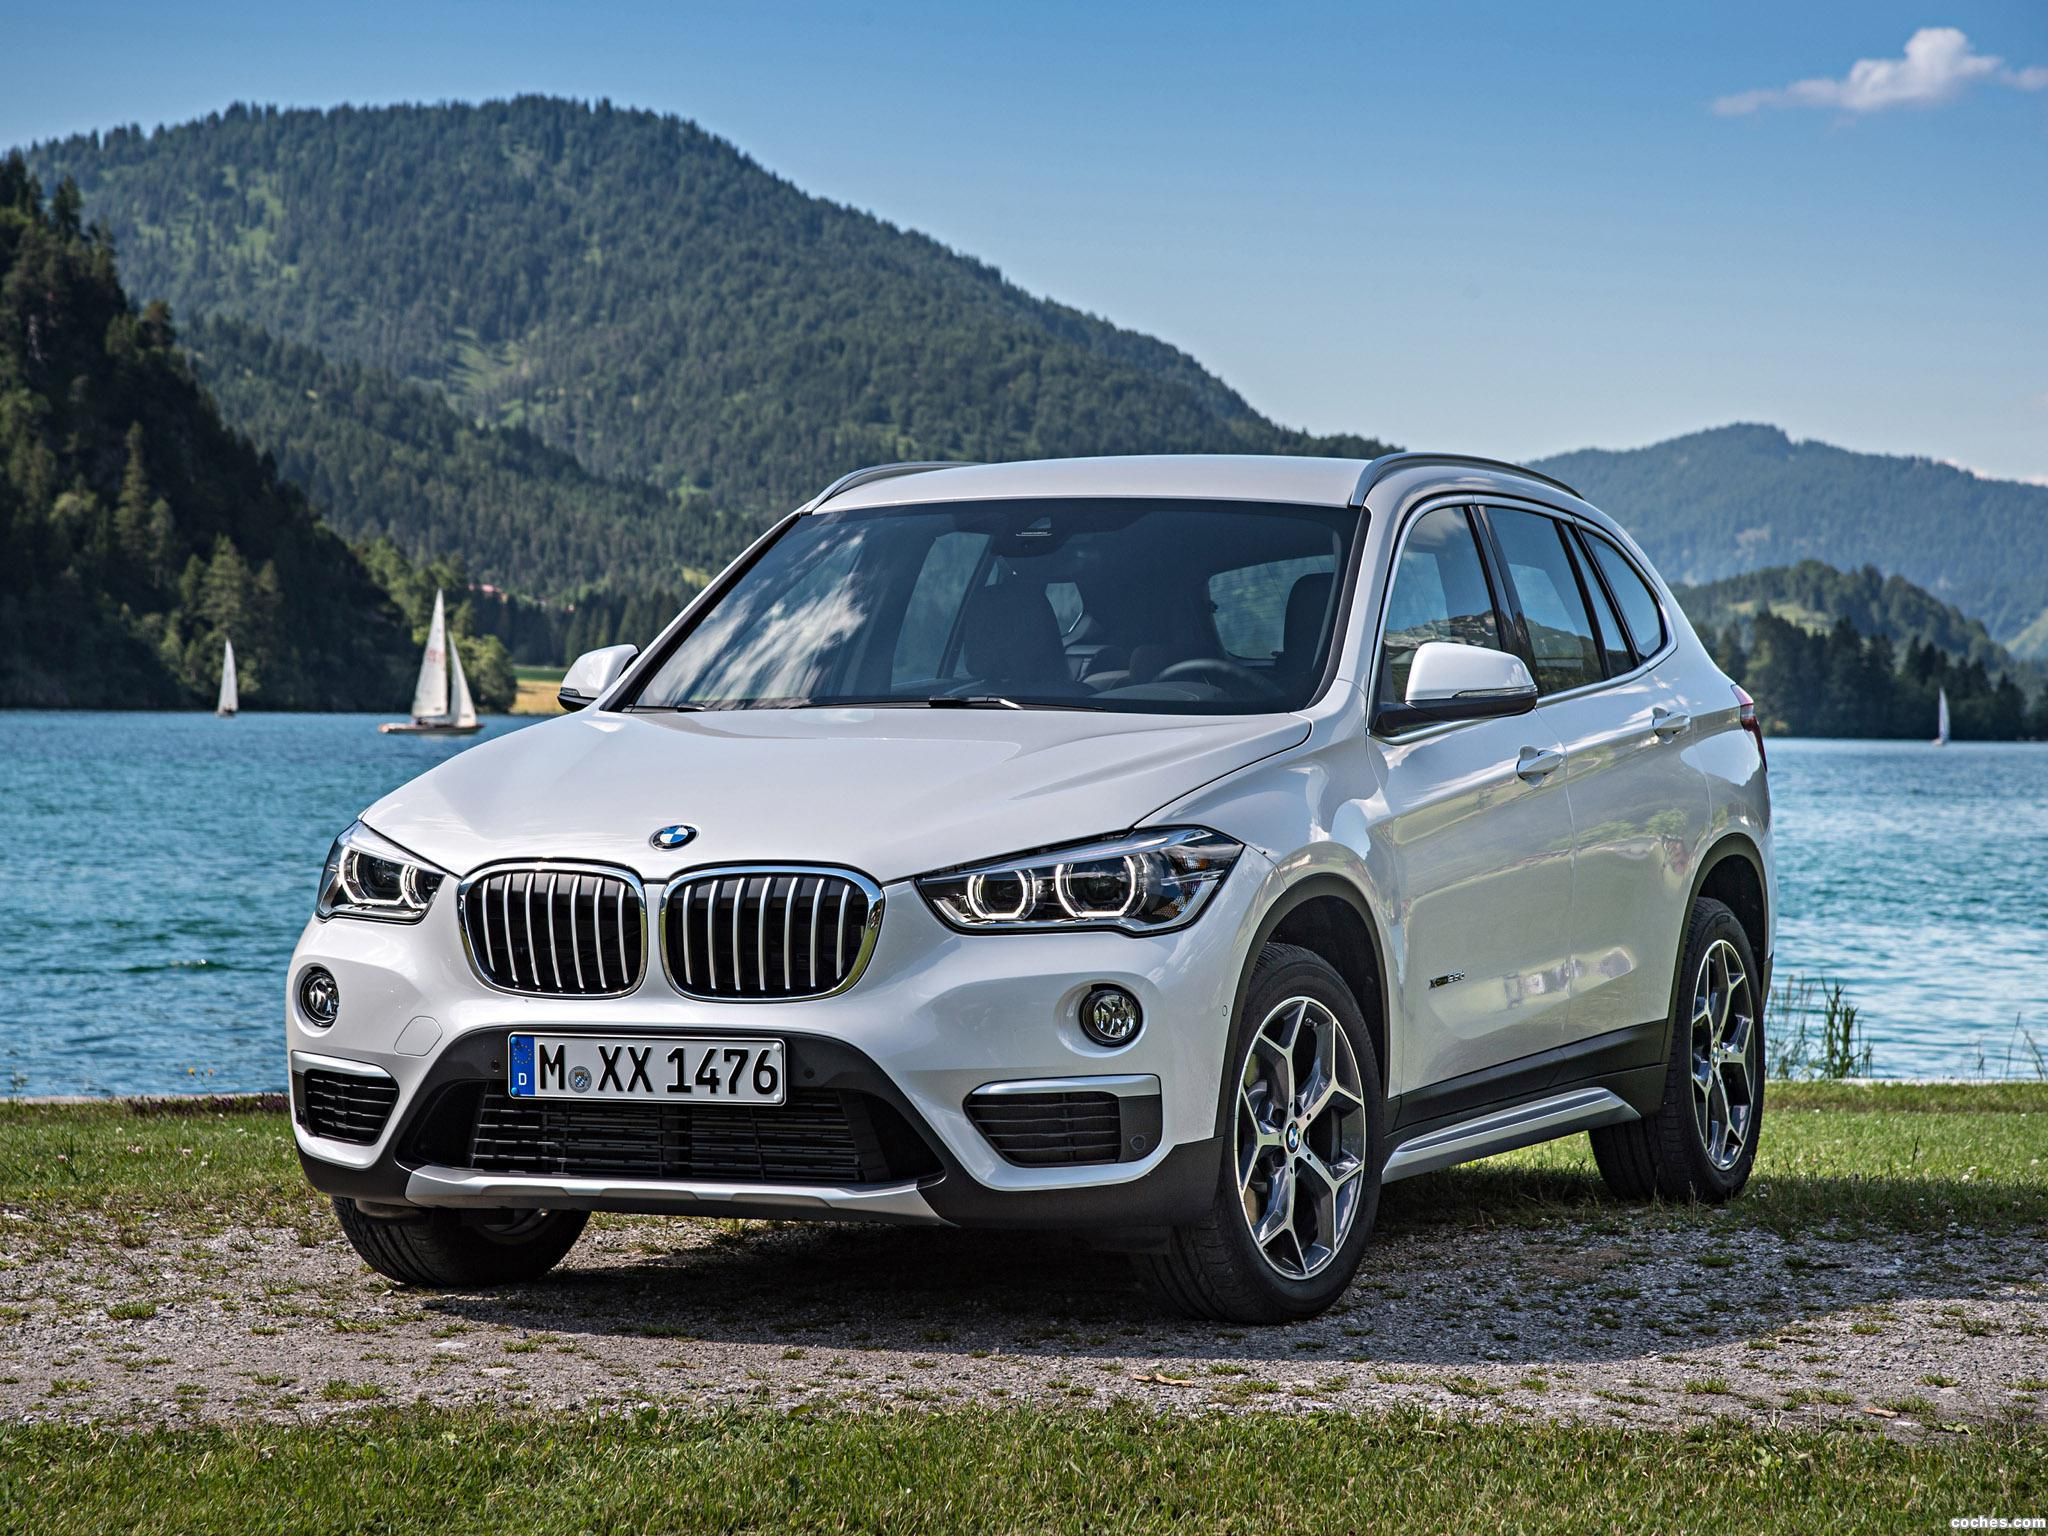 fotos de bmw x1 xdrive25d xline f48 2015 foto 6. Black Bedroom Furniture Sets. Home Design Ideas